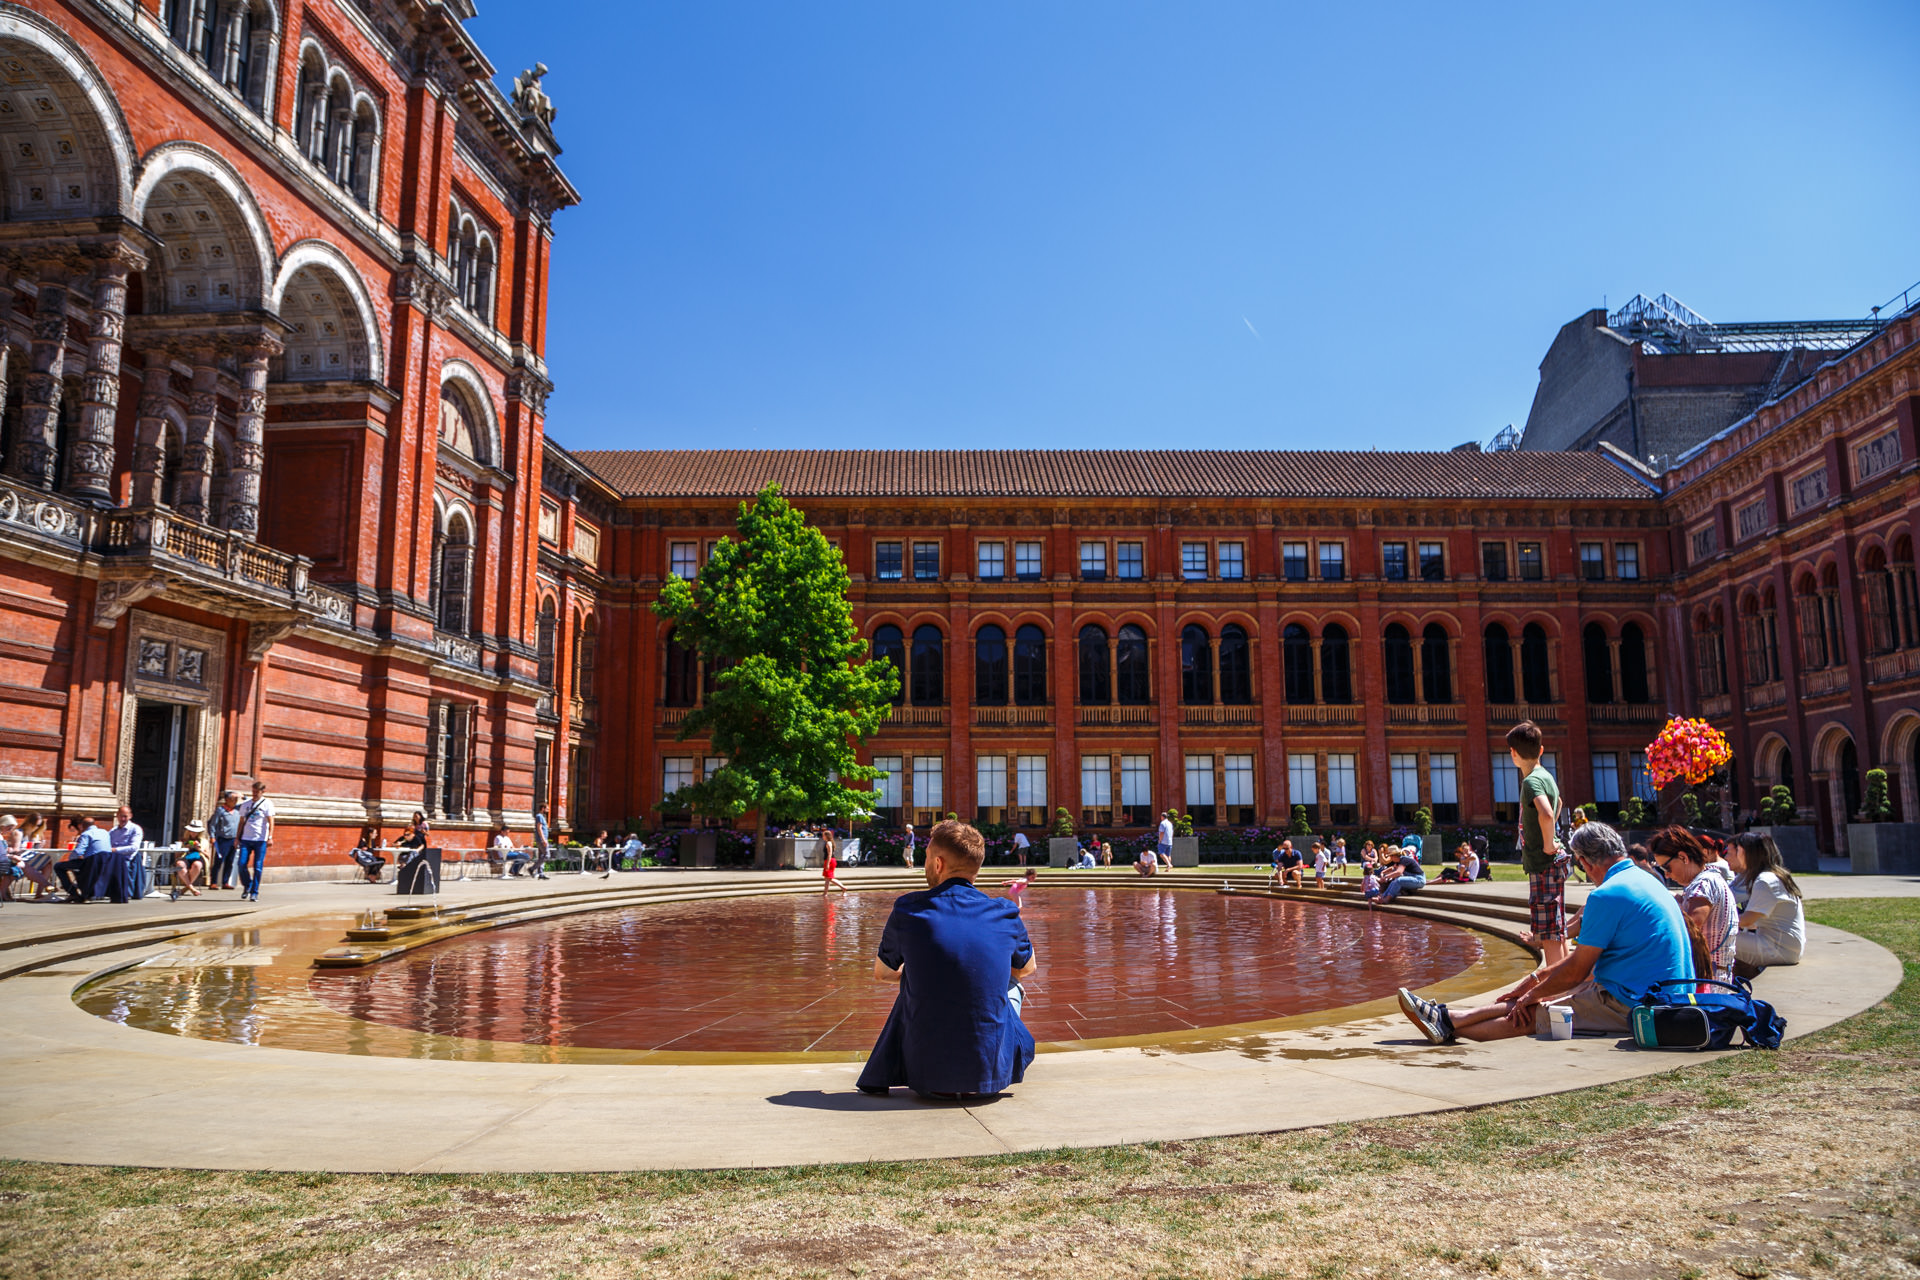 Courtyard of the V&A Museum.